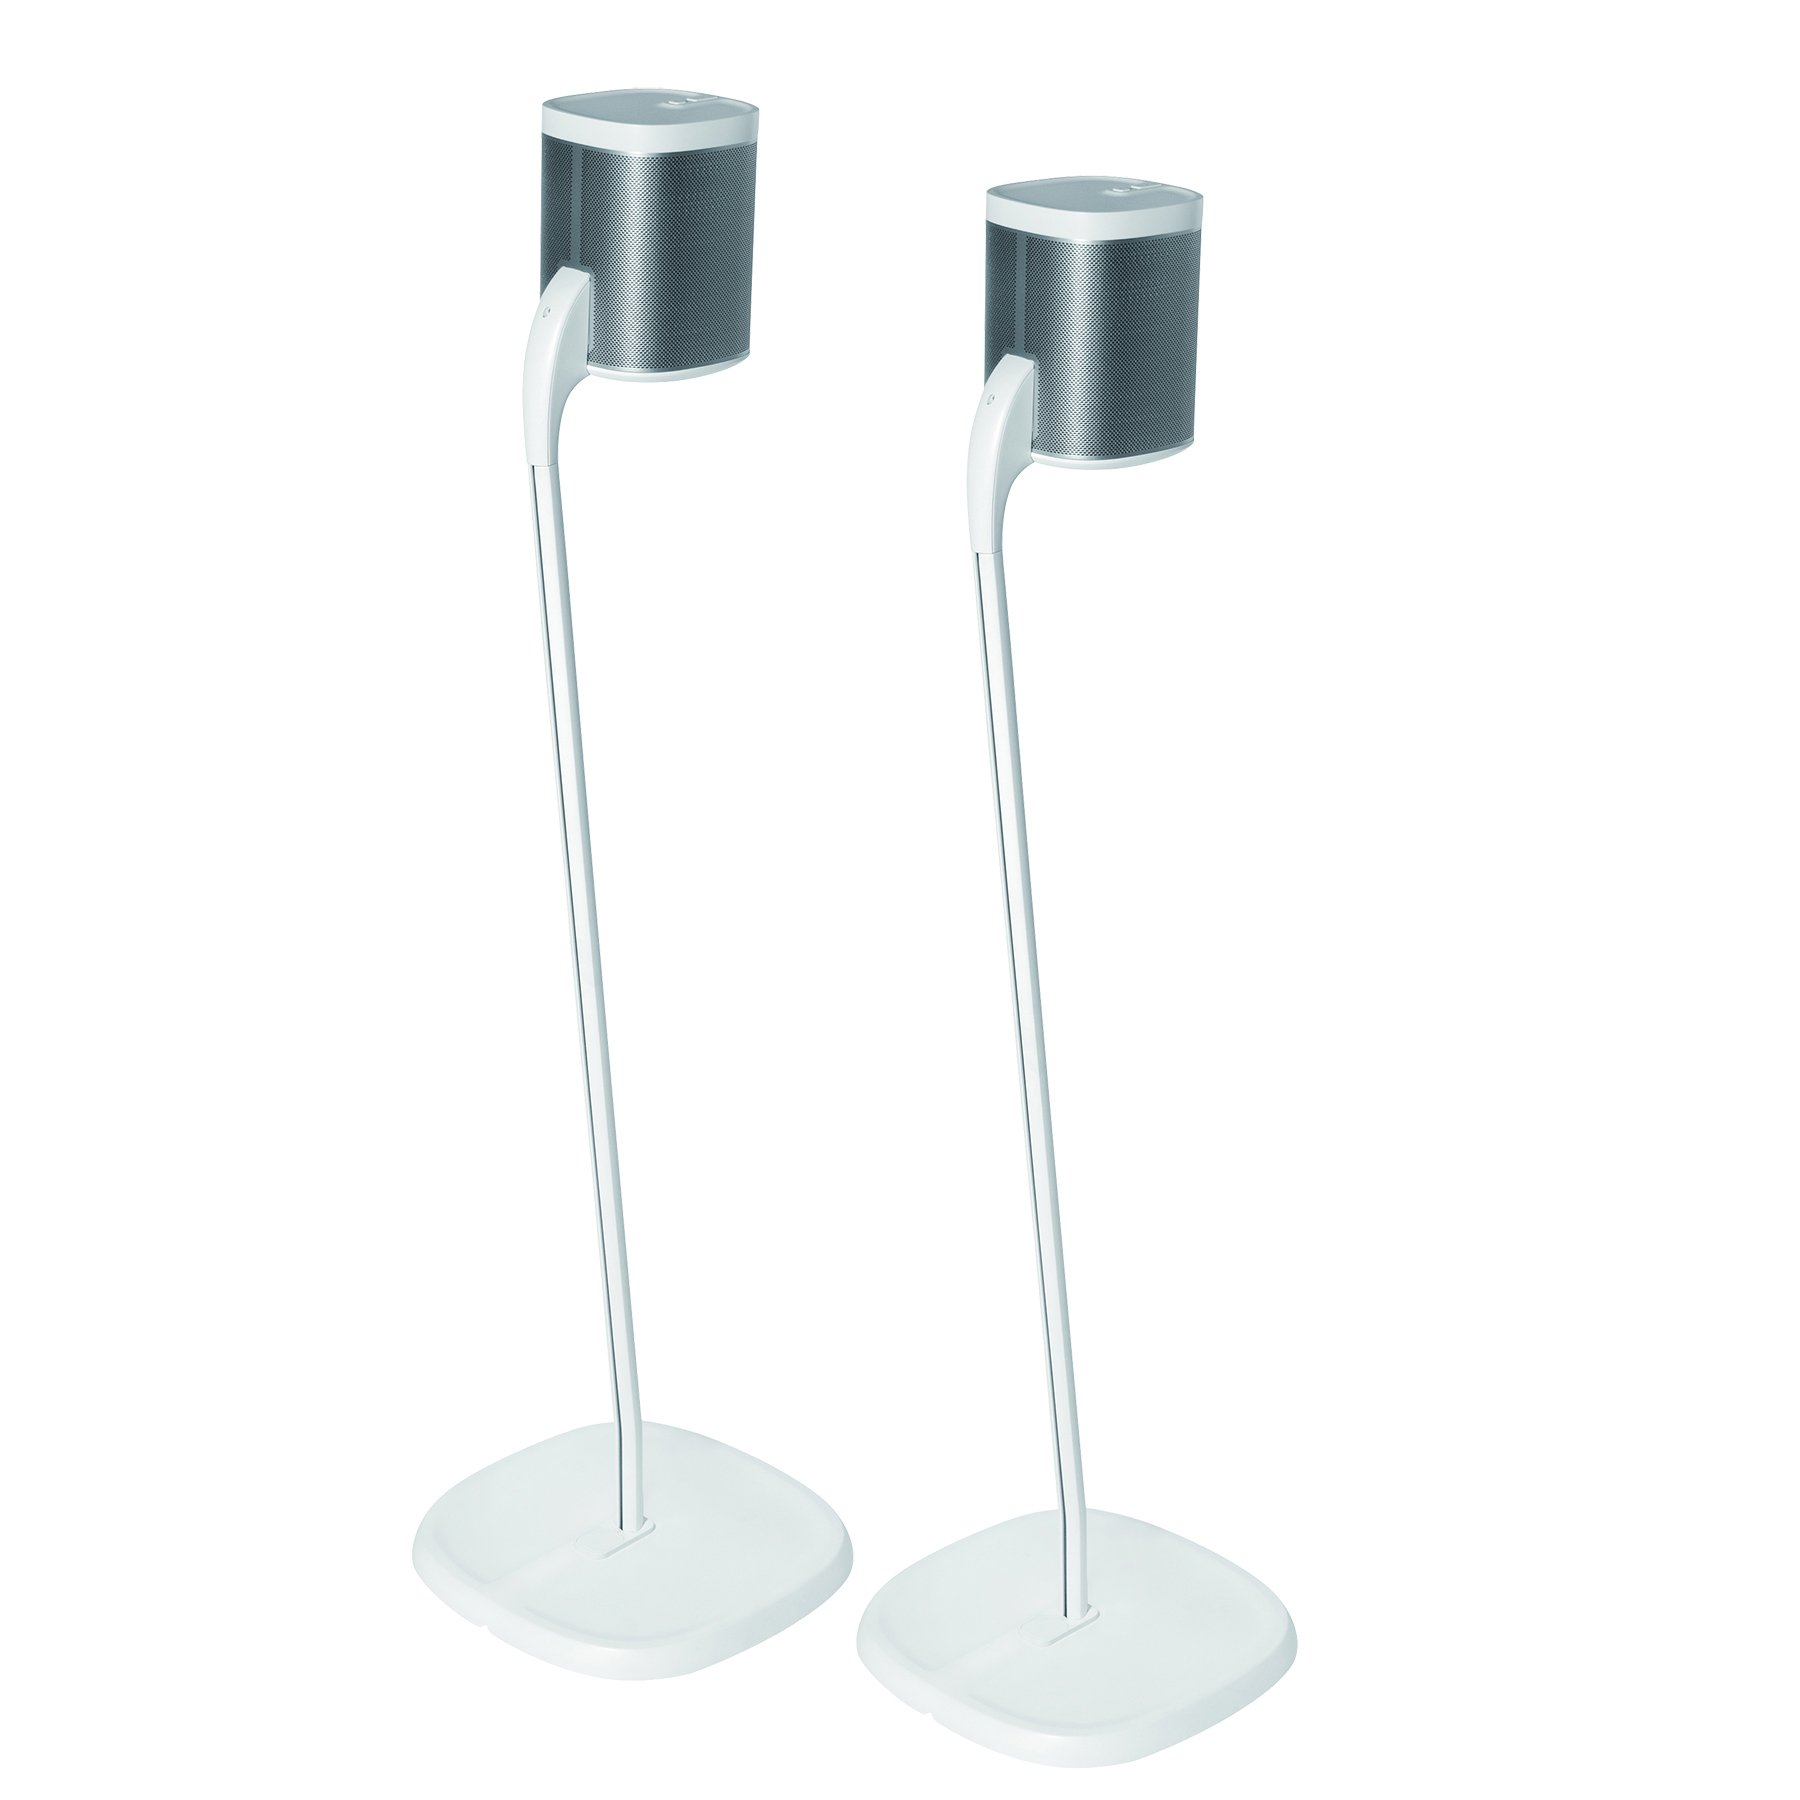 GT STUDIO Speaker Stand for SONOS One, Play 1 or Play 3, Premium Surround Sound, Heavy Base, Complete Cord Concealment - (Pair, White)